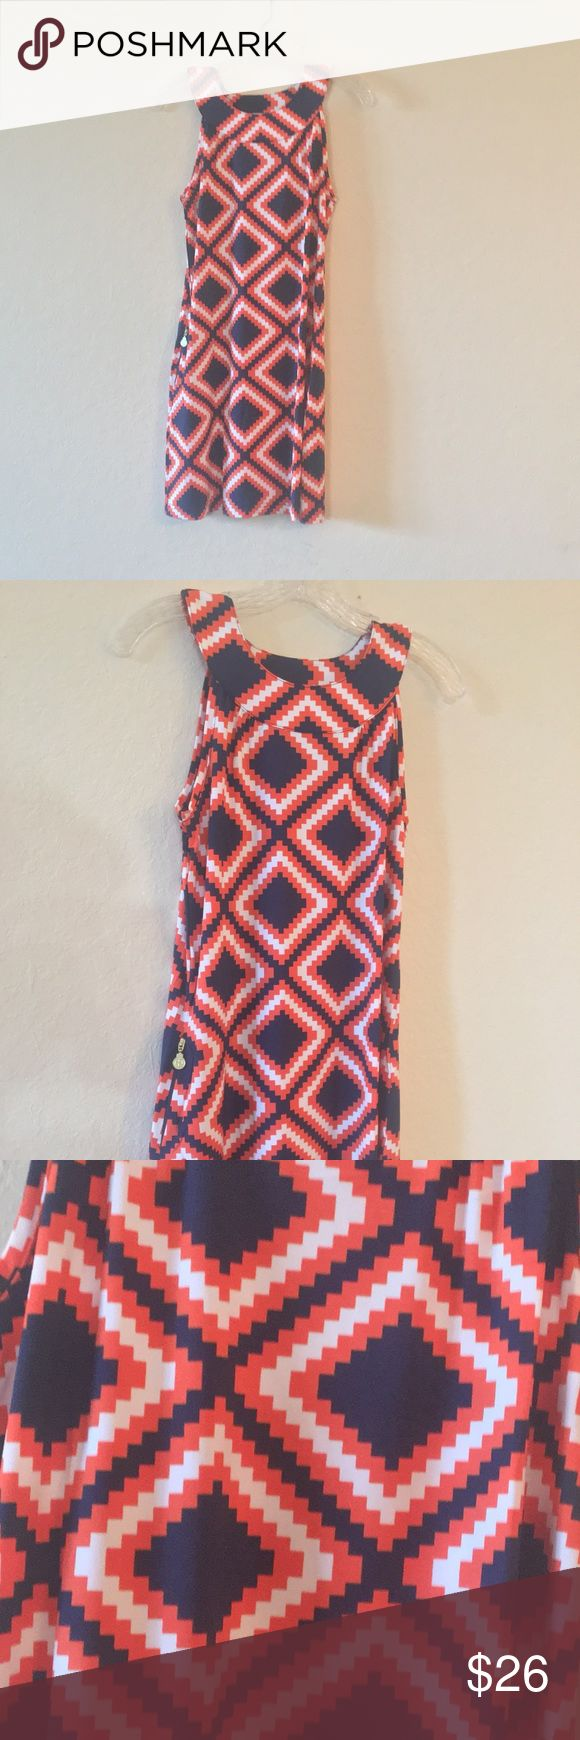 Tracy Negoshian orange and blue dress Stand out in this beautiful Tracy Negoshian diamond print dress! Great addition to any UF fan's closet!   Tracy Negoshian dress. Orange & navy diamond print. Sleeveless zip up body con. 95% polyester  5% Elastane Tracy Negoshian Dresses